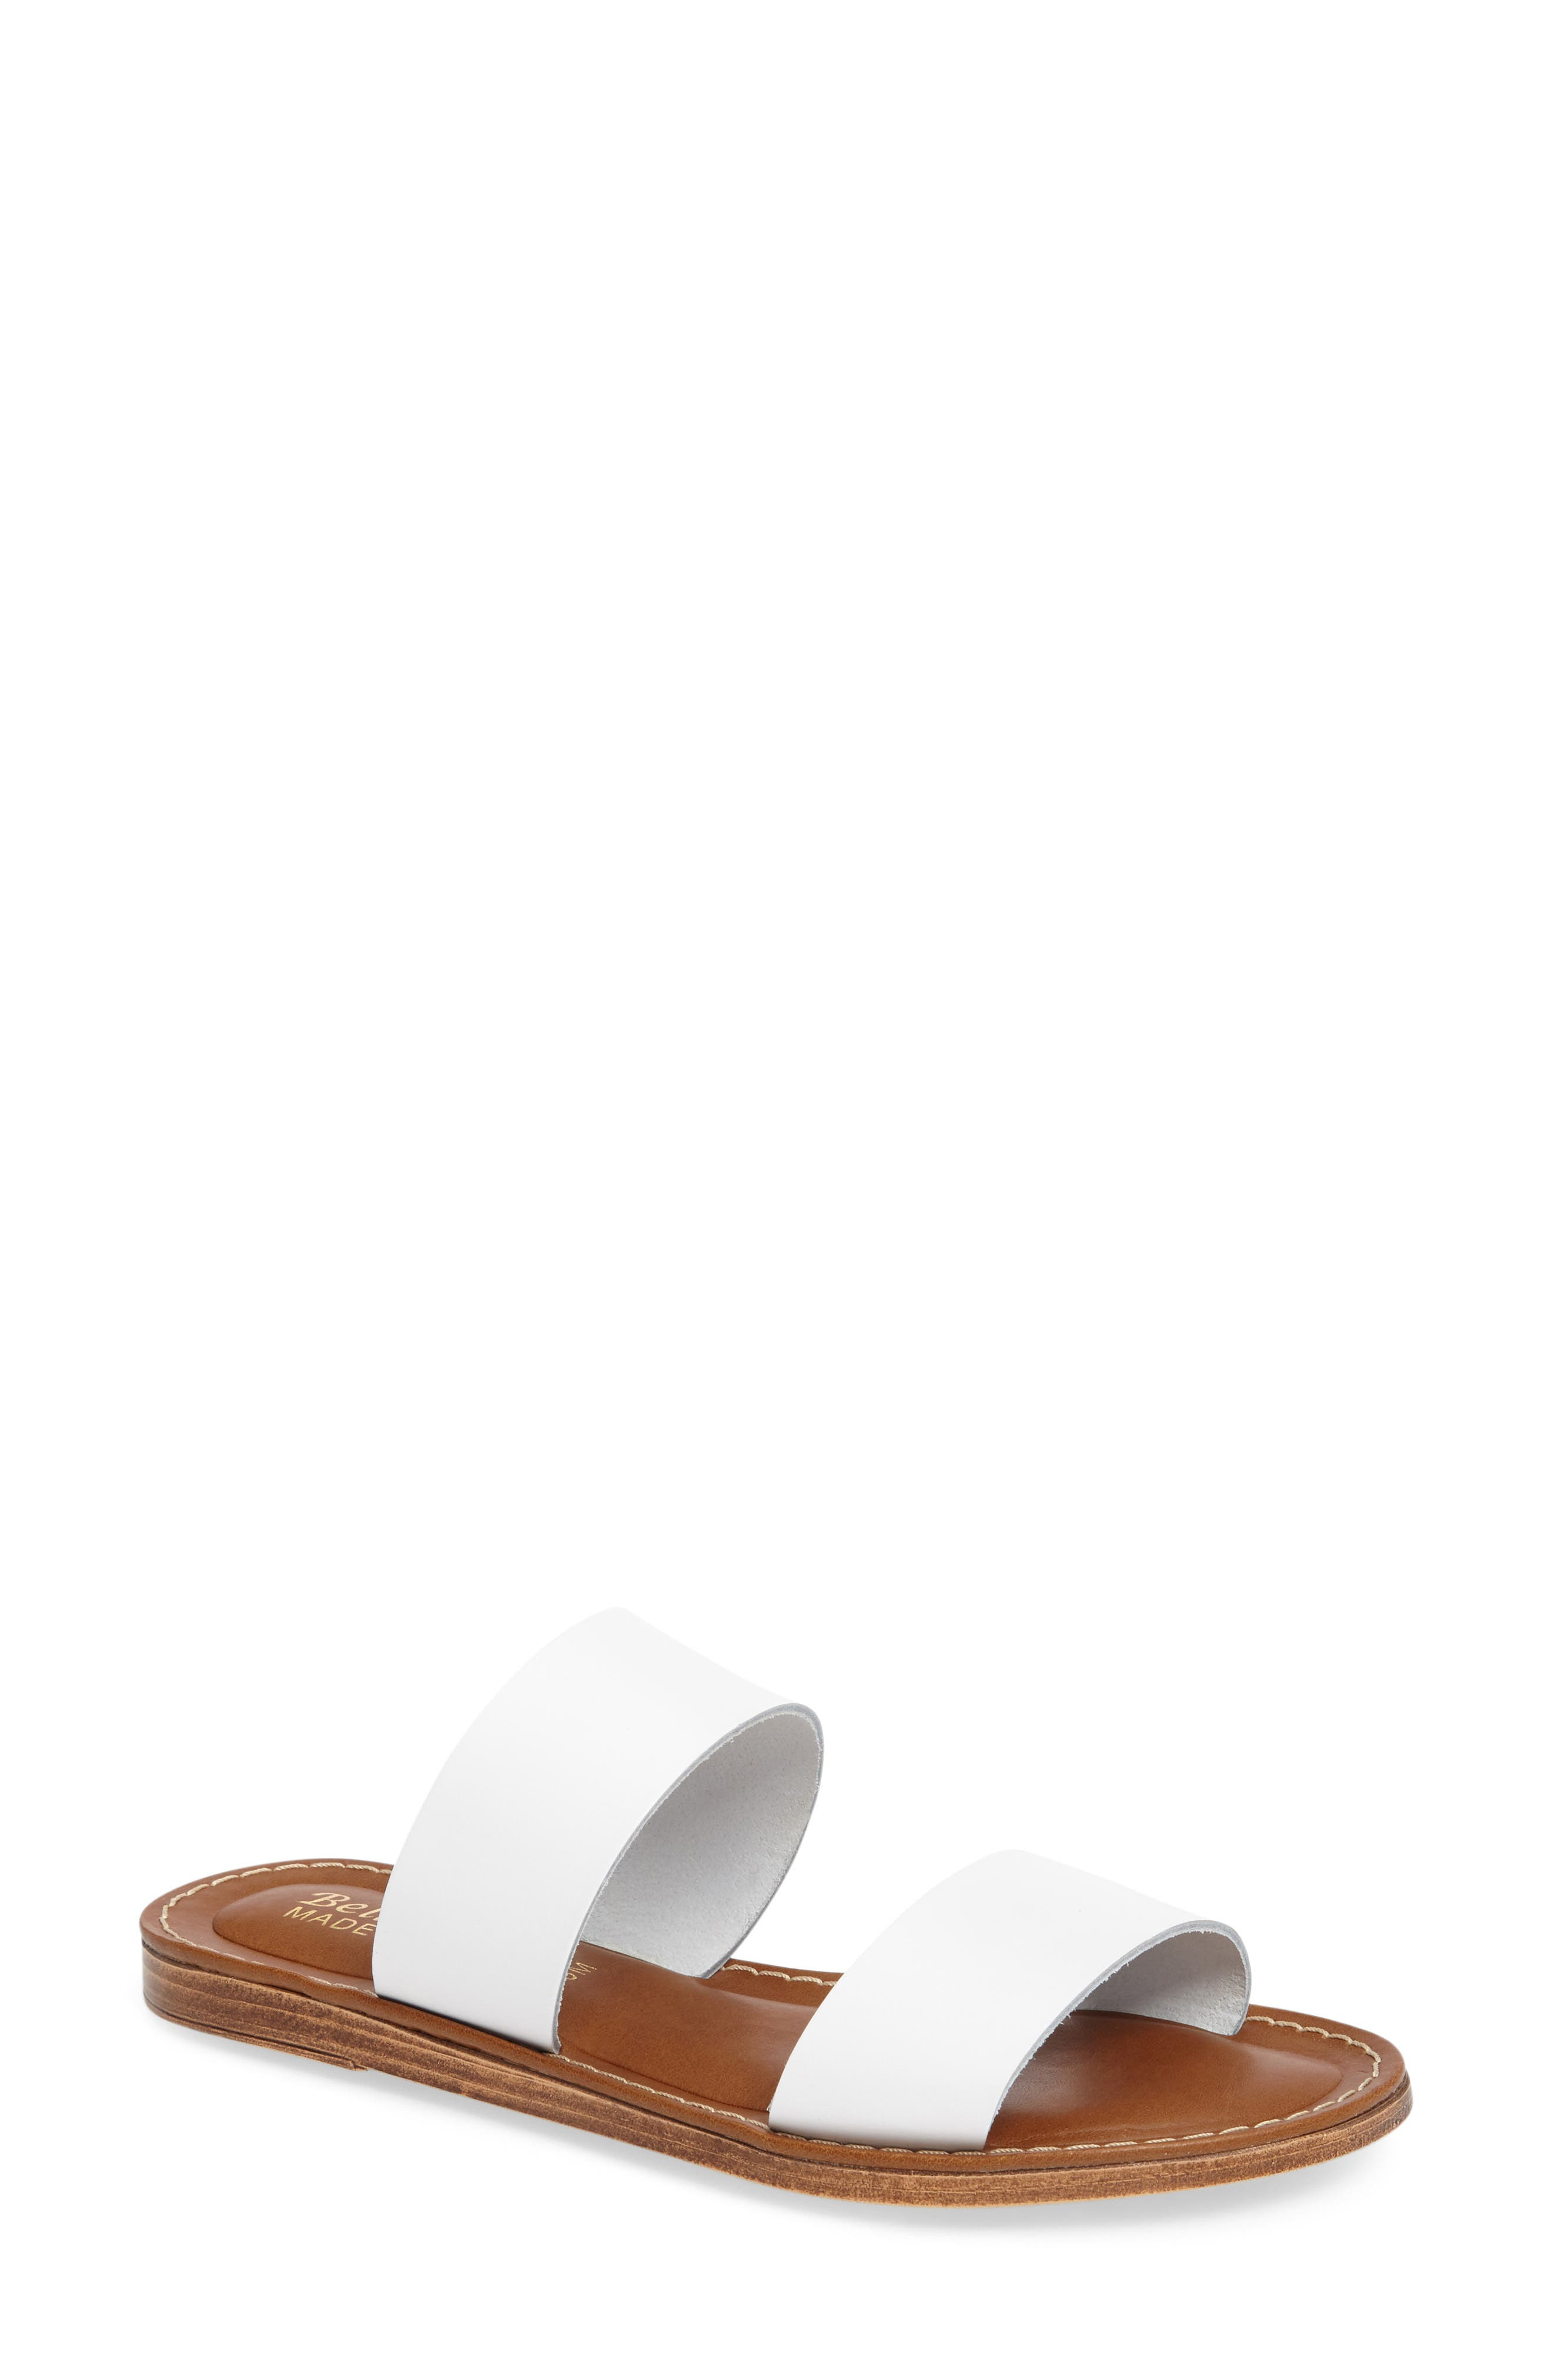 Imo Slide Sandal,                         Main,                         color, White Leather